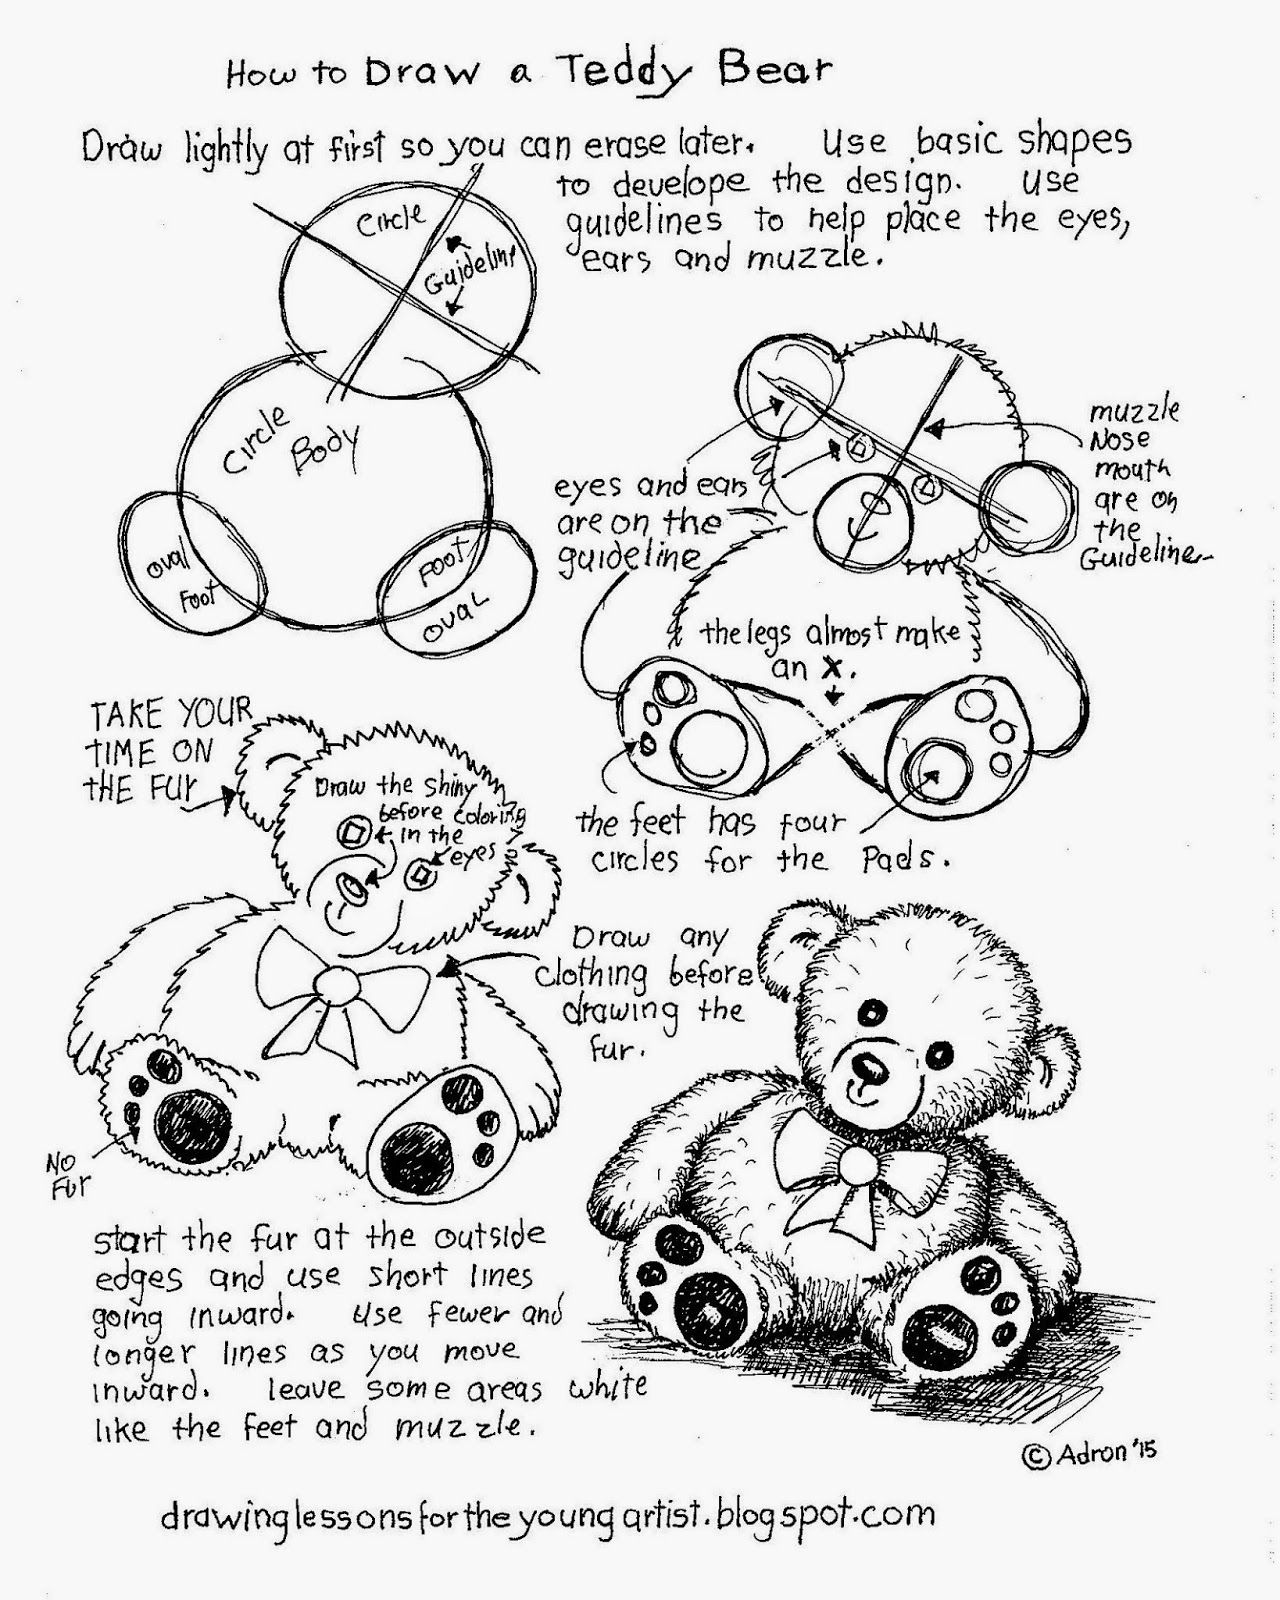 How To Draw A Teddy Bear See More At My Blog